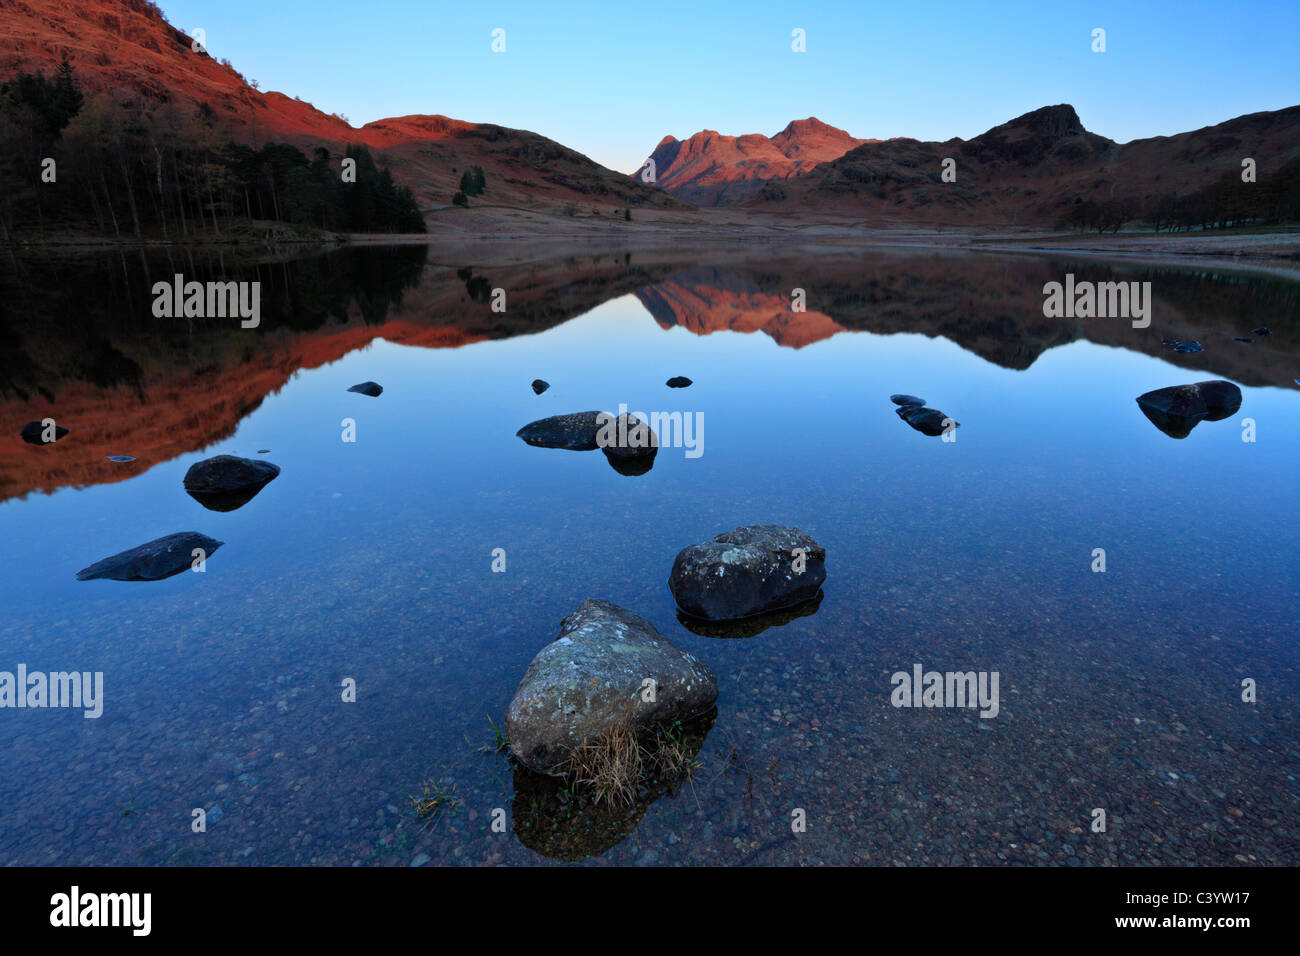 Late autumn light on the icy edges of a calm Blea Tarn in the Lake District of England - Stock Image